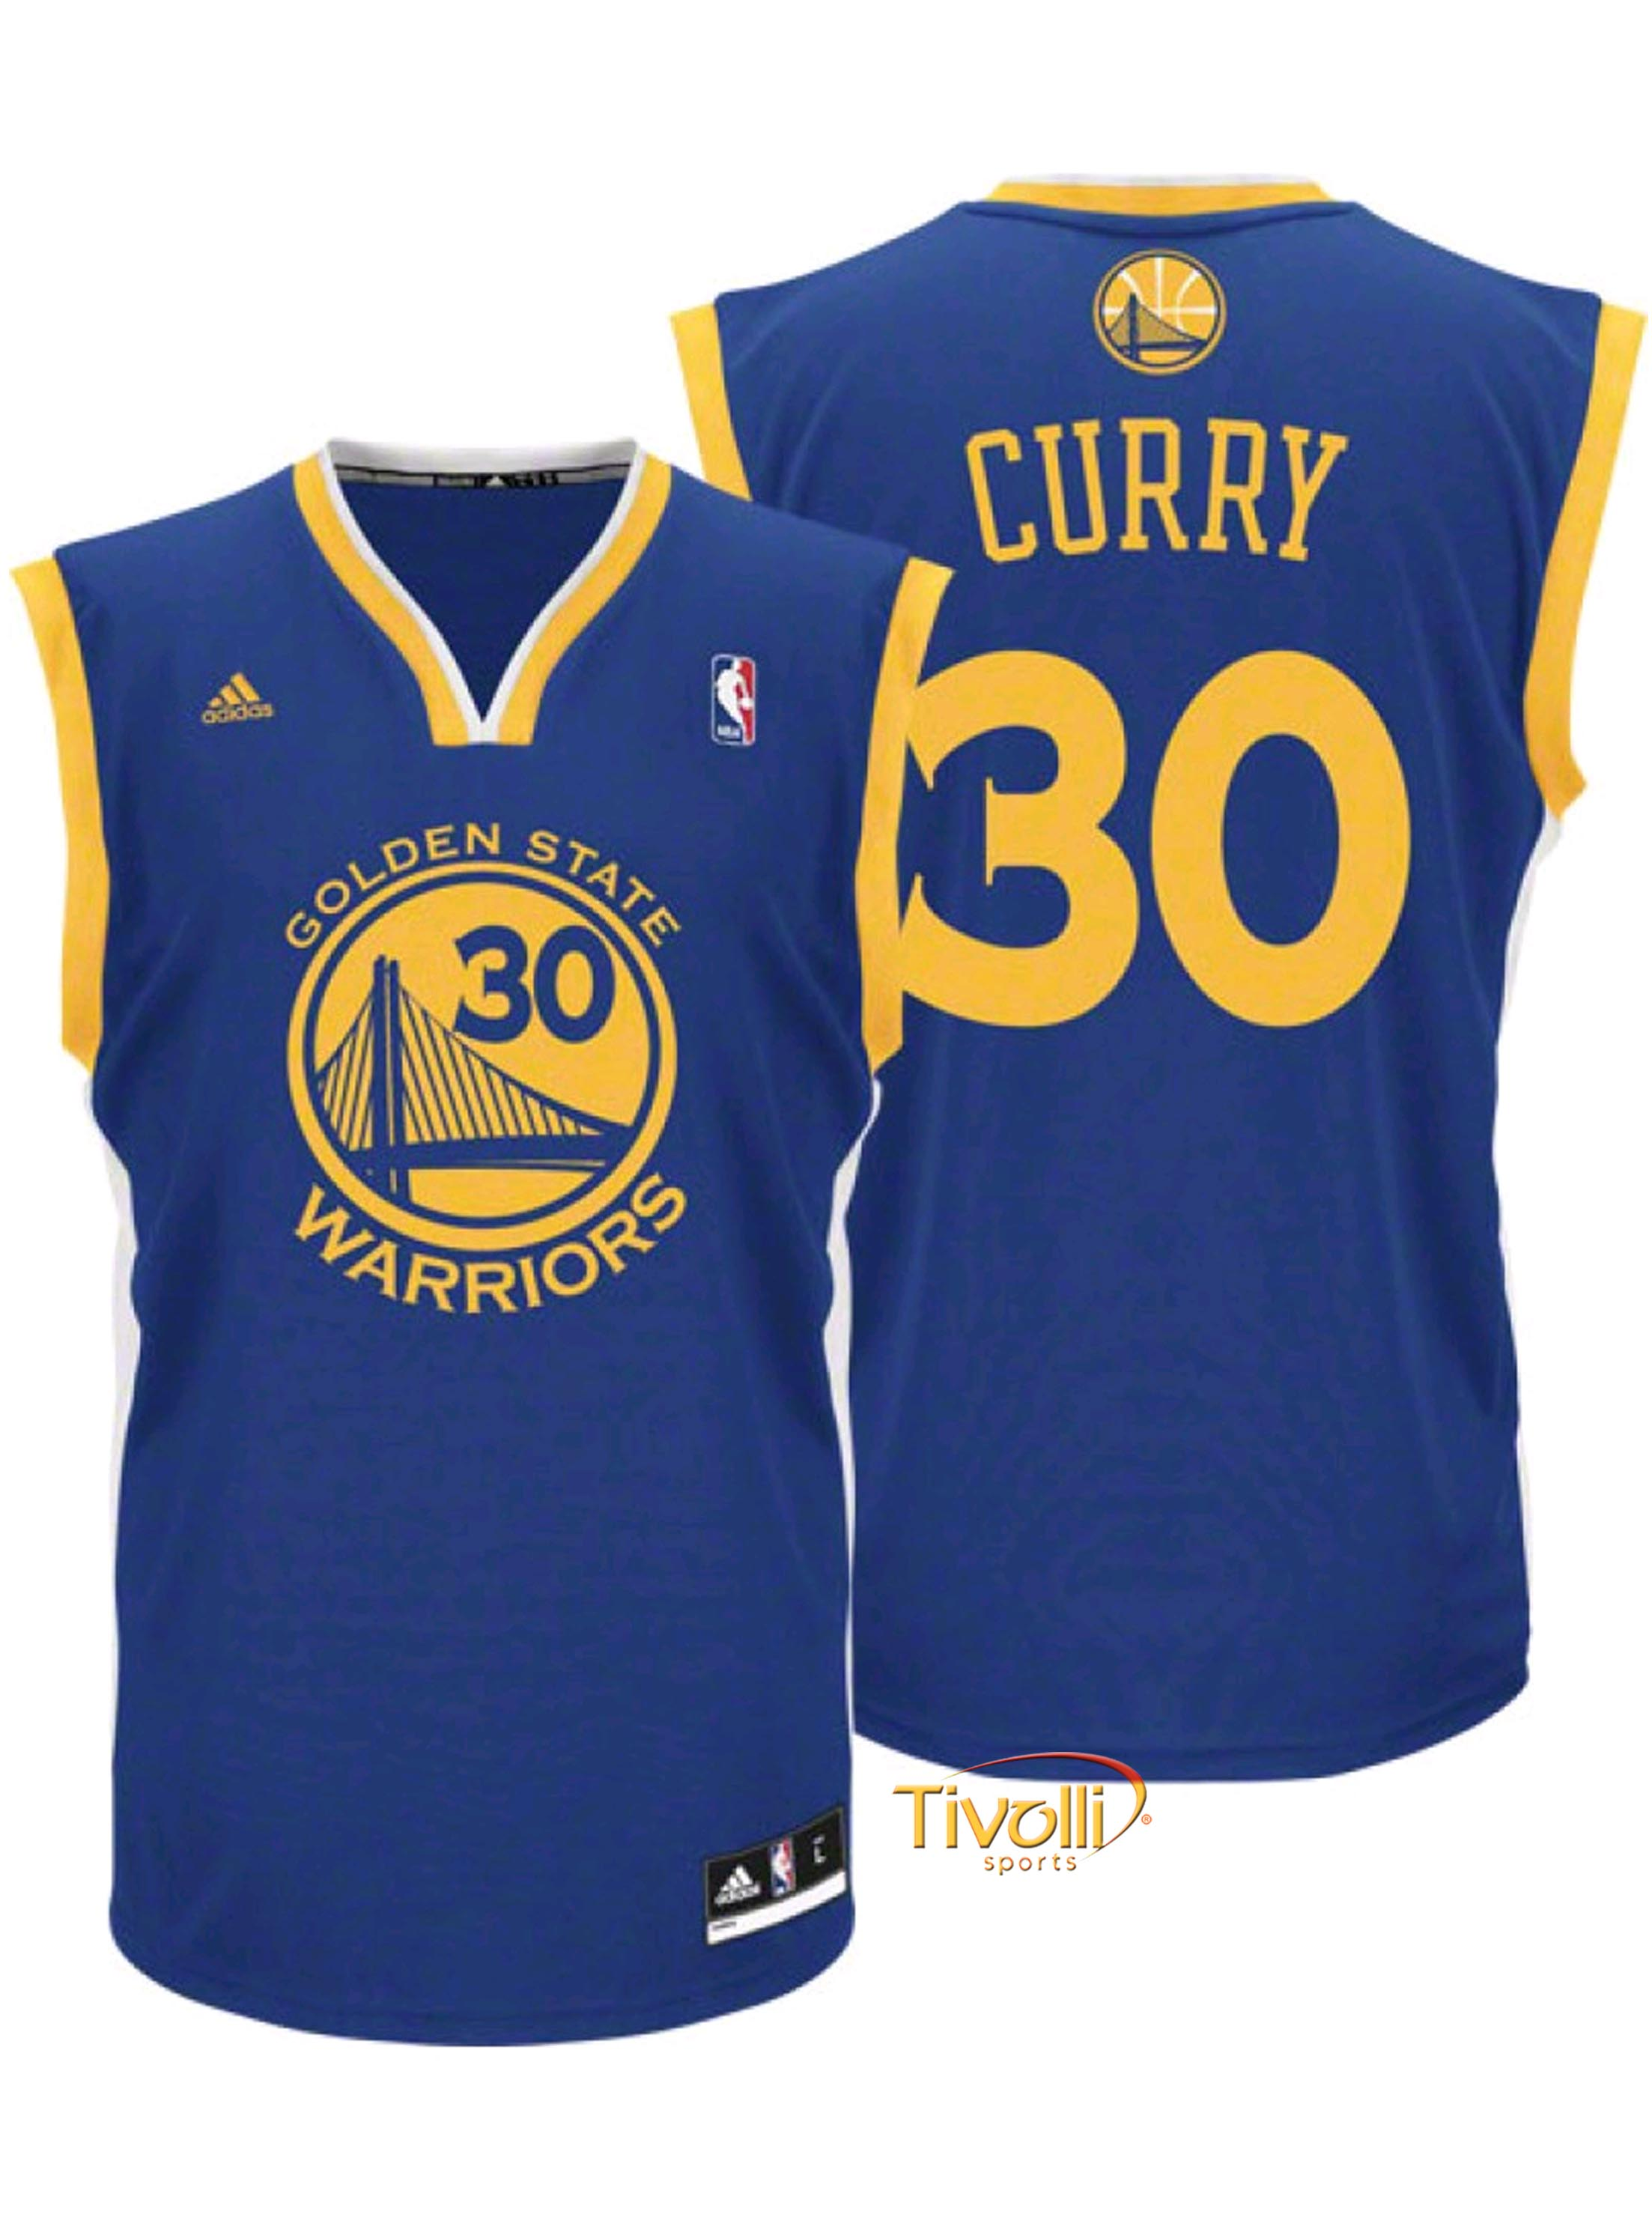 36ce8f10666d Regata Adidas NBA Golden State Warriors - Stephen Curry   Azul ...